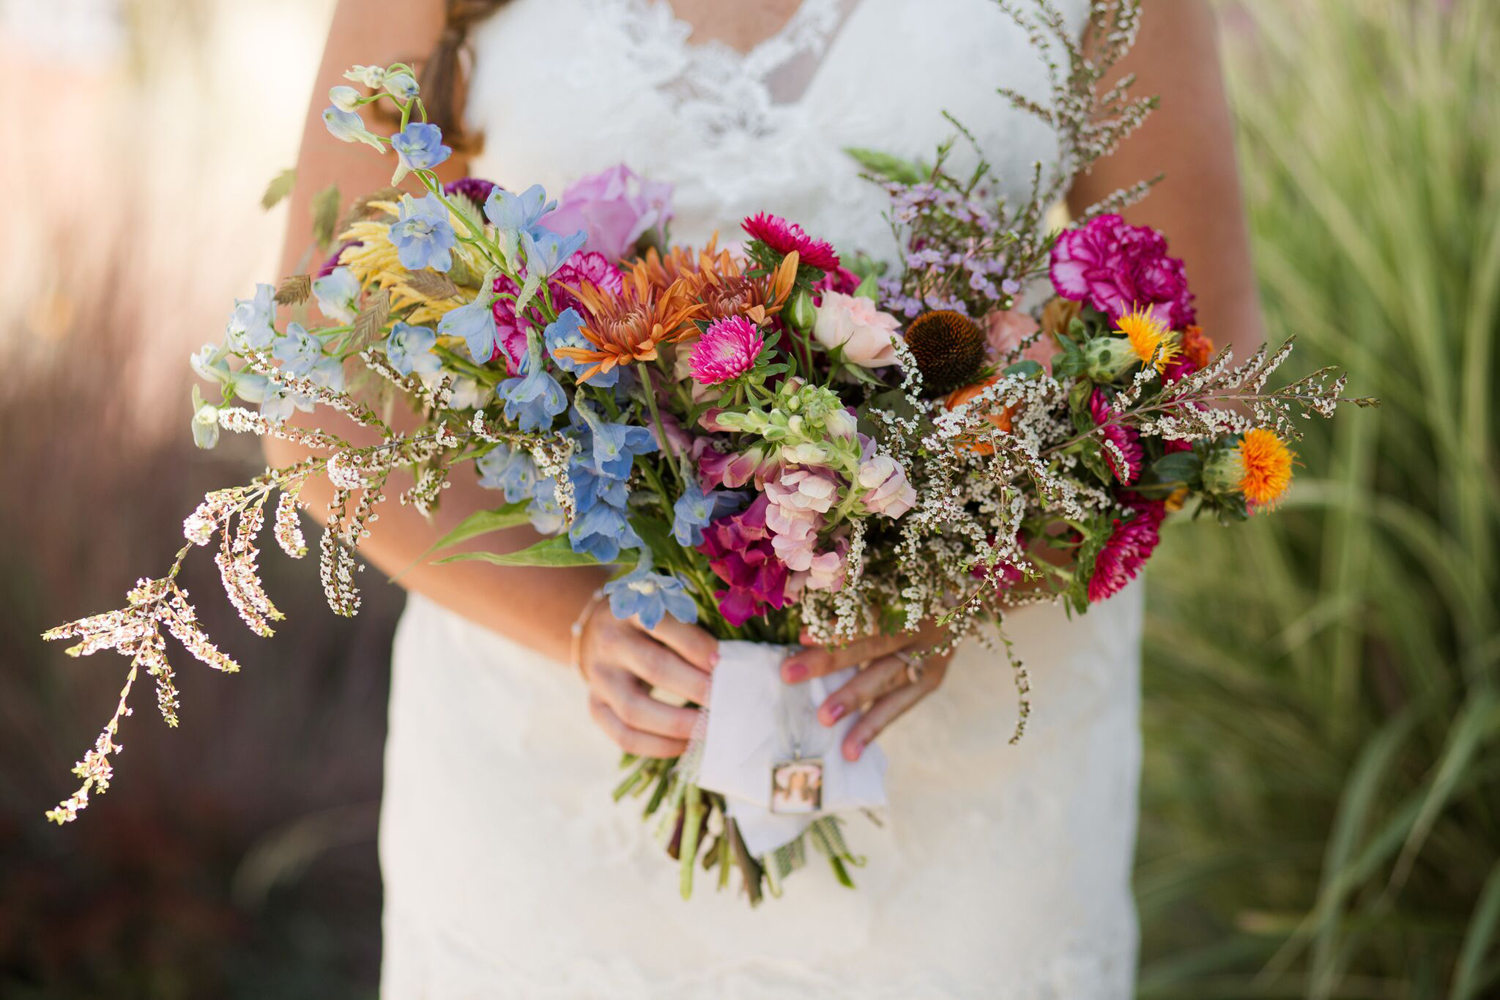 bright-florals-2019-wedding-trend